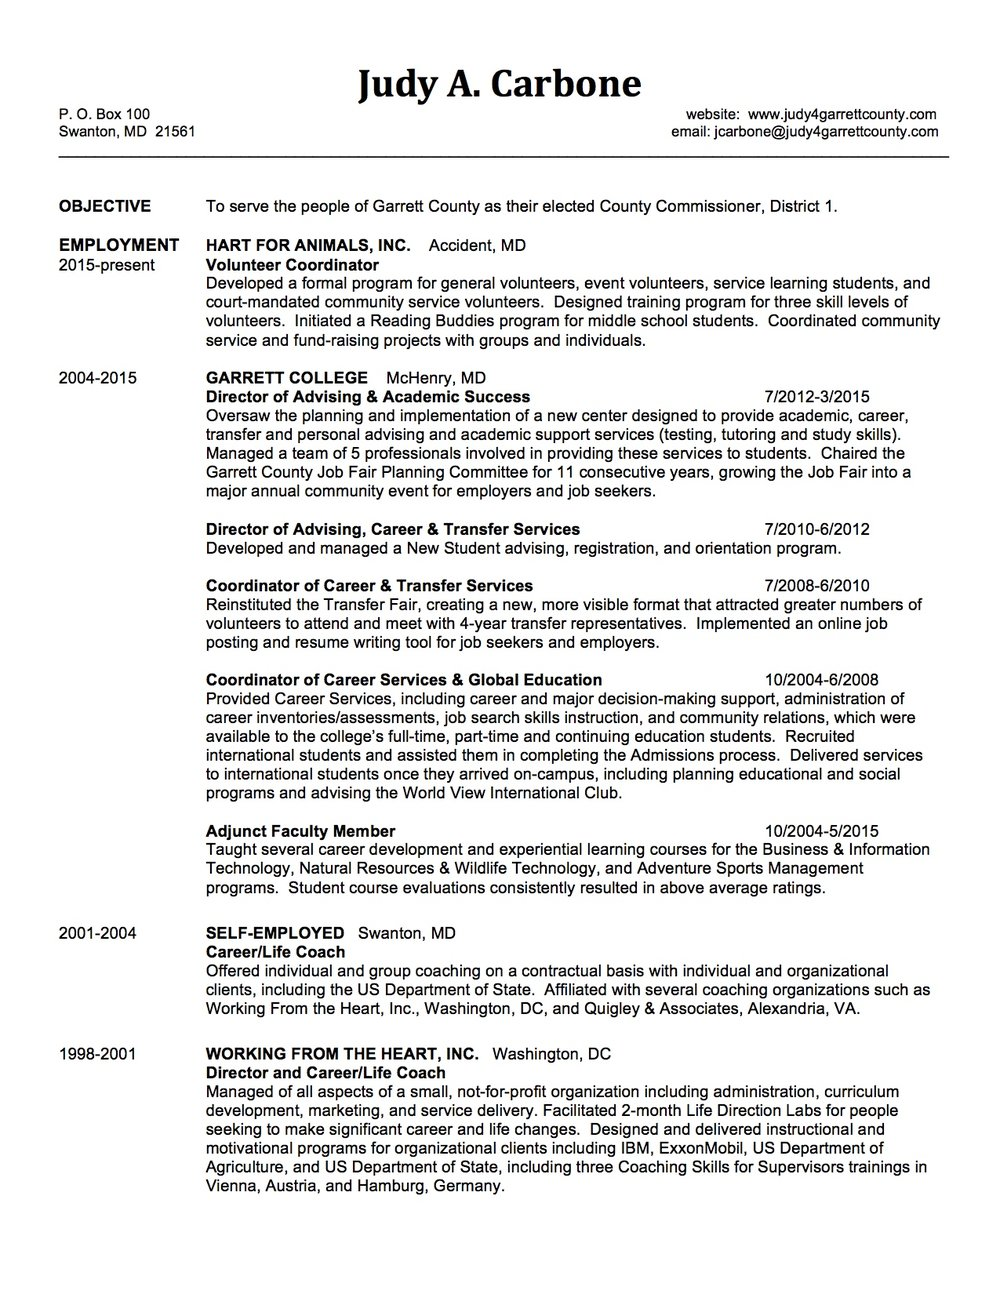 judy carbone candidate resumejpg - What Should My Resume Look Like